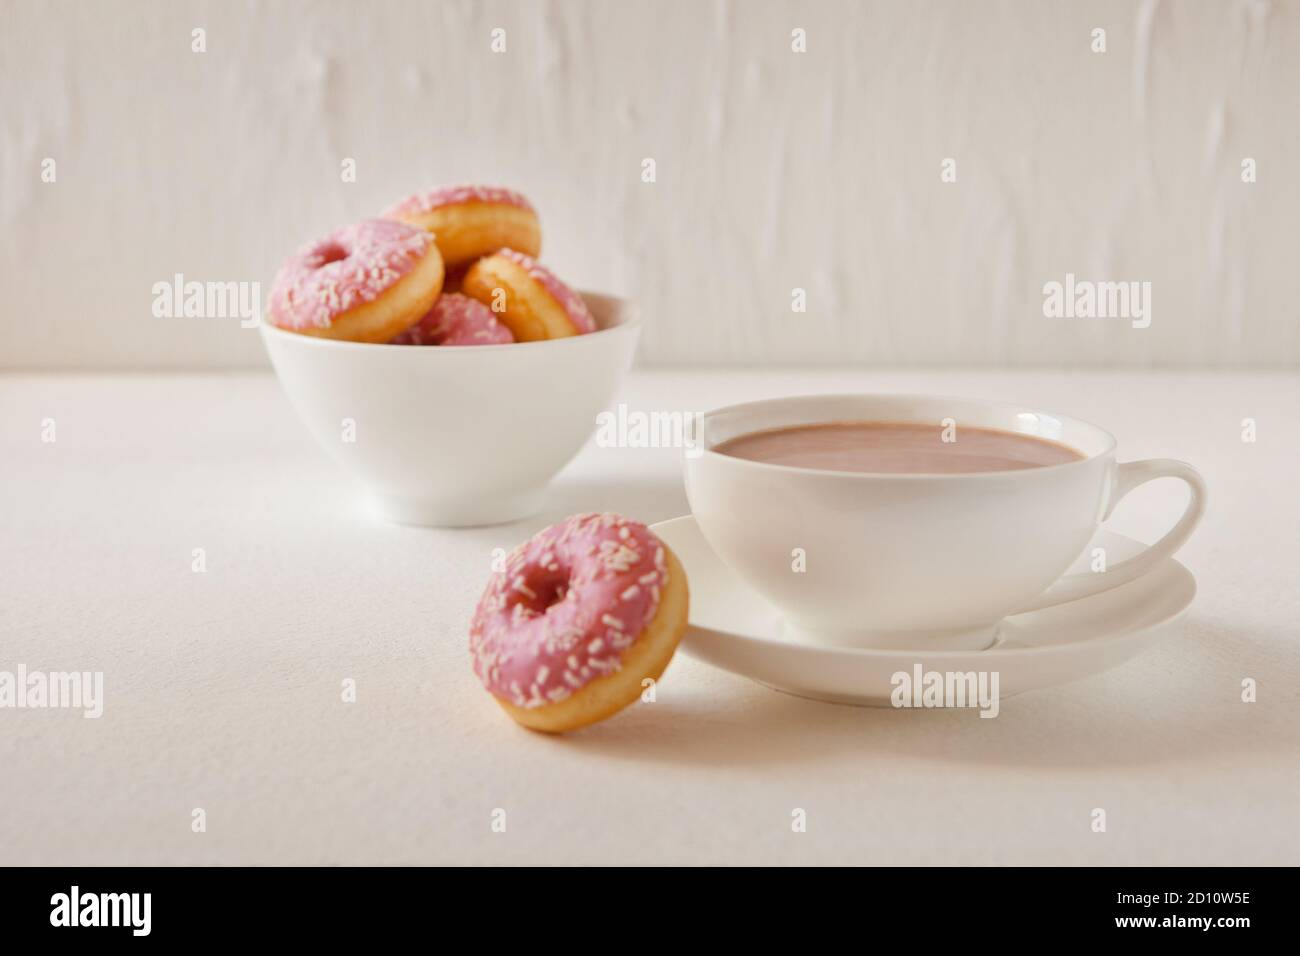 Mug Of Hot Cocoa And Donuts On White Background Tasty Pink Donuts And Hot Cacao Cup Sweet Breakfast Stock Photo Alamy